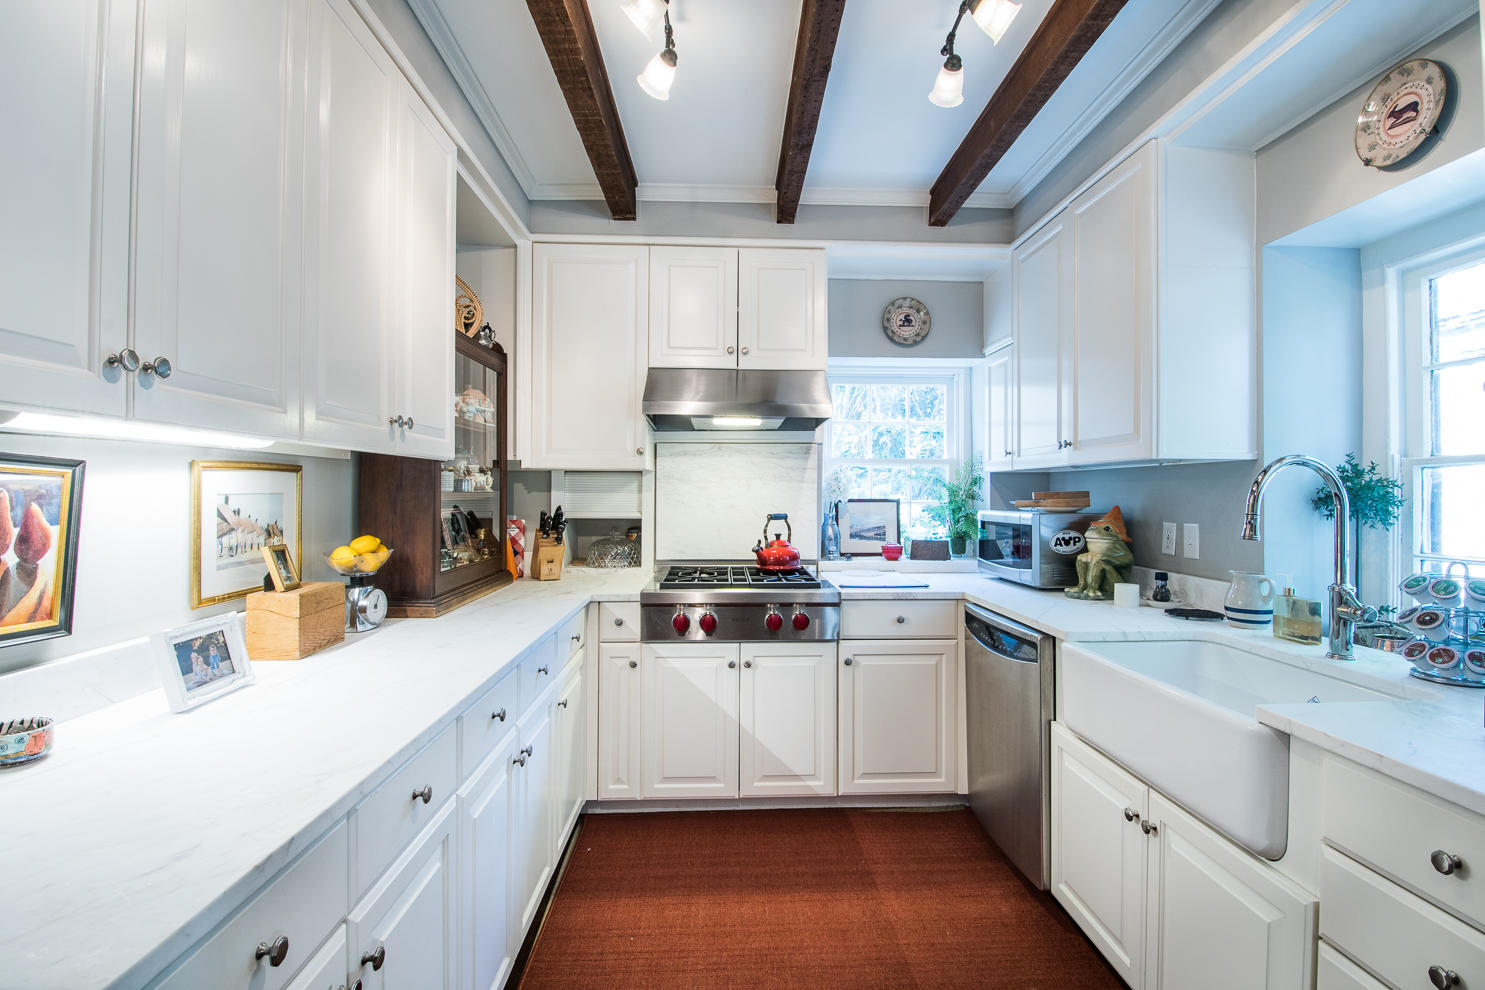 South of Broad Homes For Sale - 1 Prices, Charleston, SC - 22